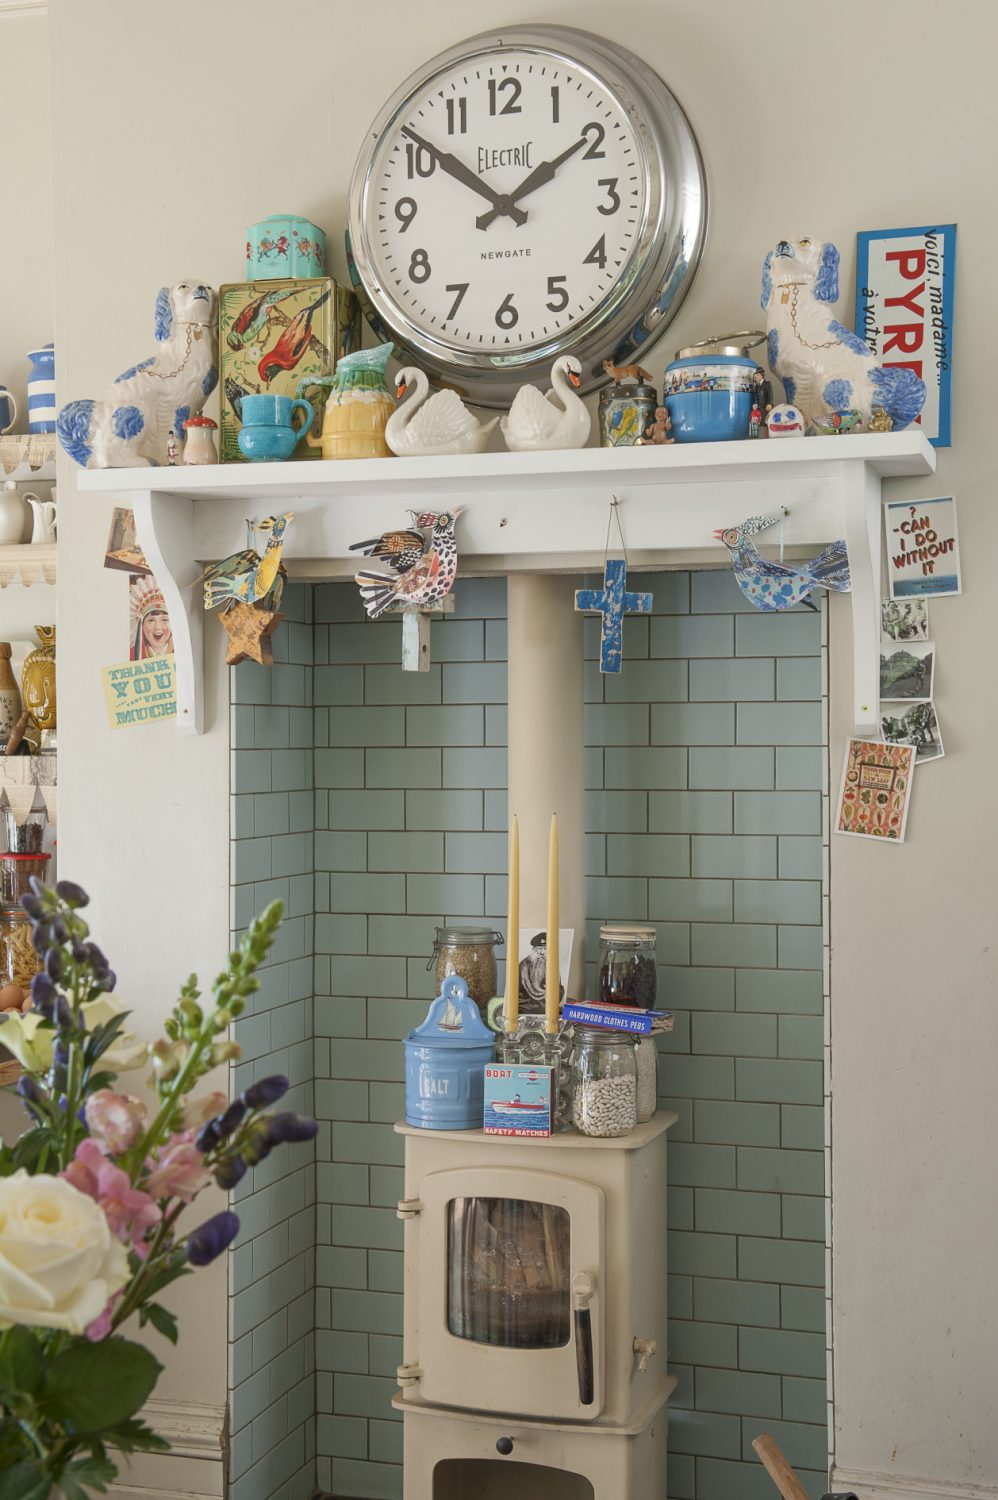 A duck egg blue tiled alcove houses a woodburning stove